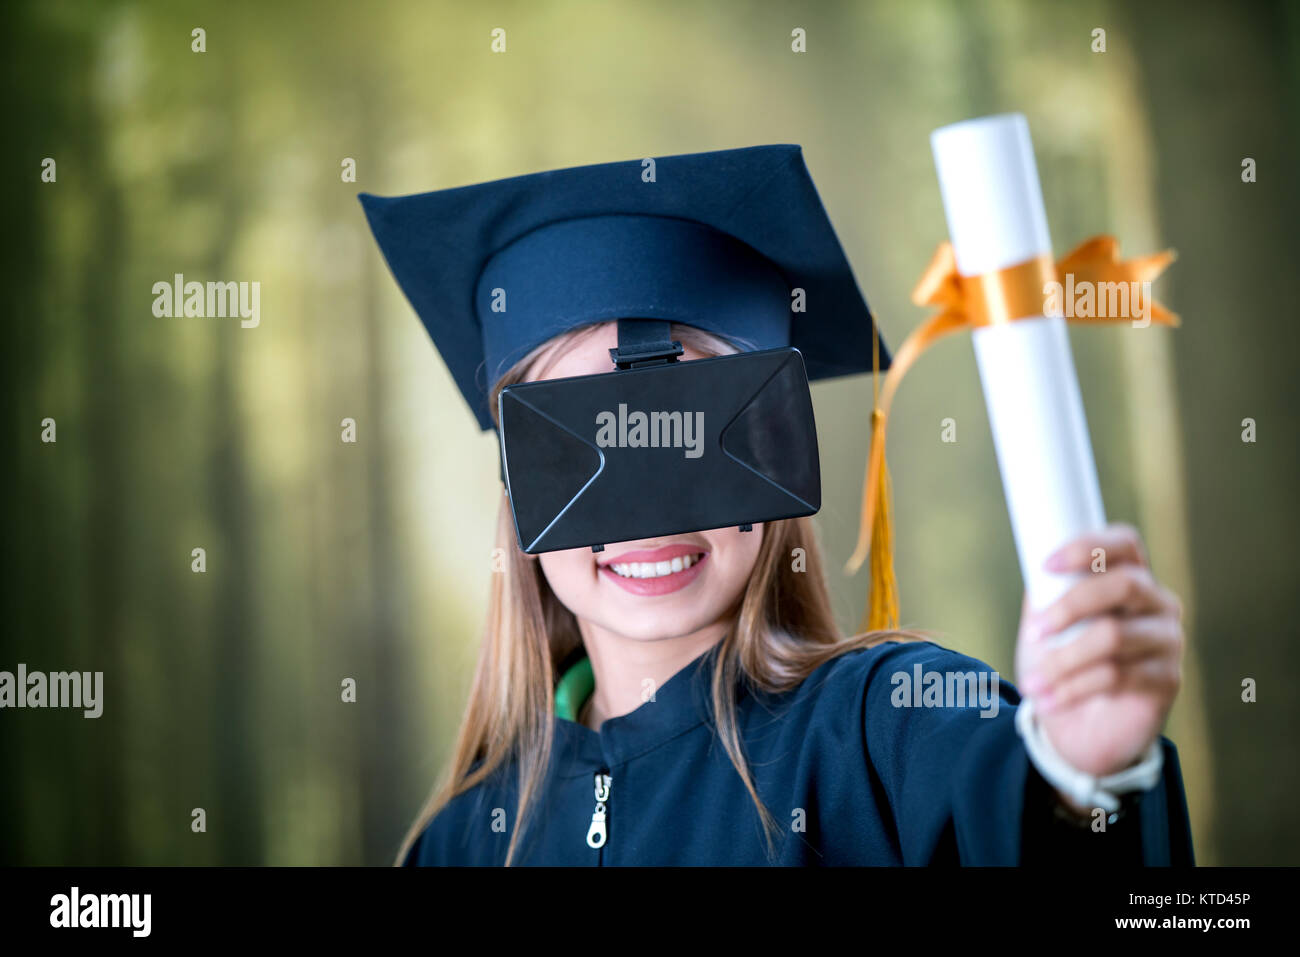 graduation vr distance learning concept diploma hat stock  graduation vr distance learning concept diploma hat